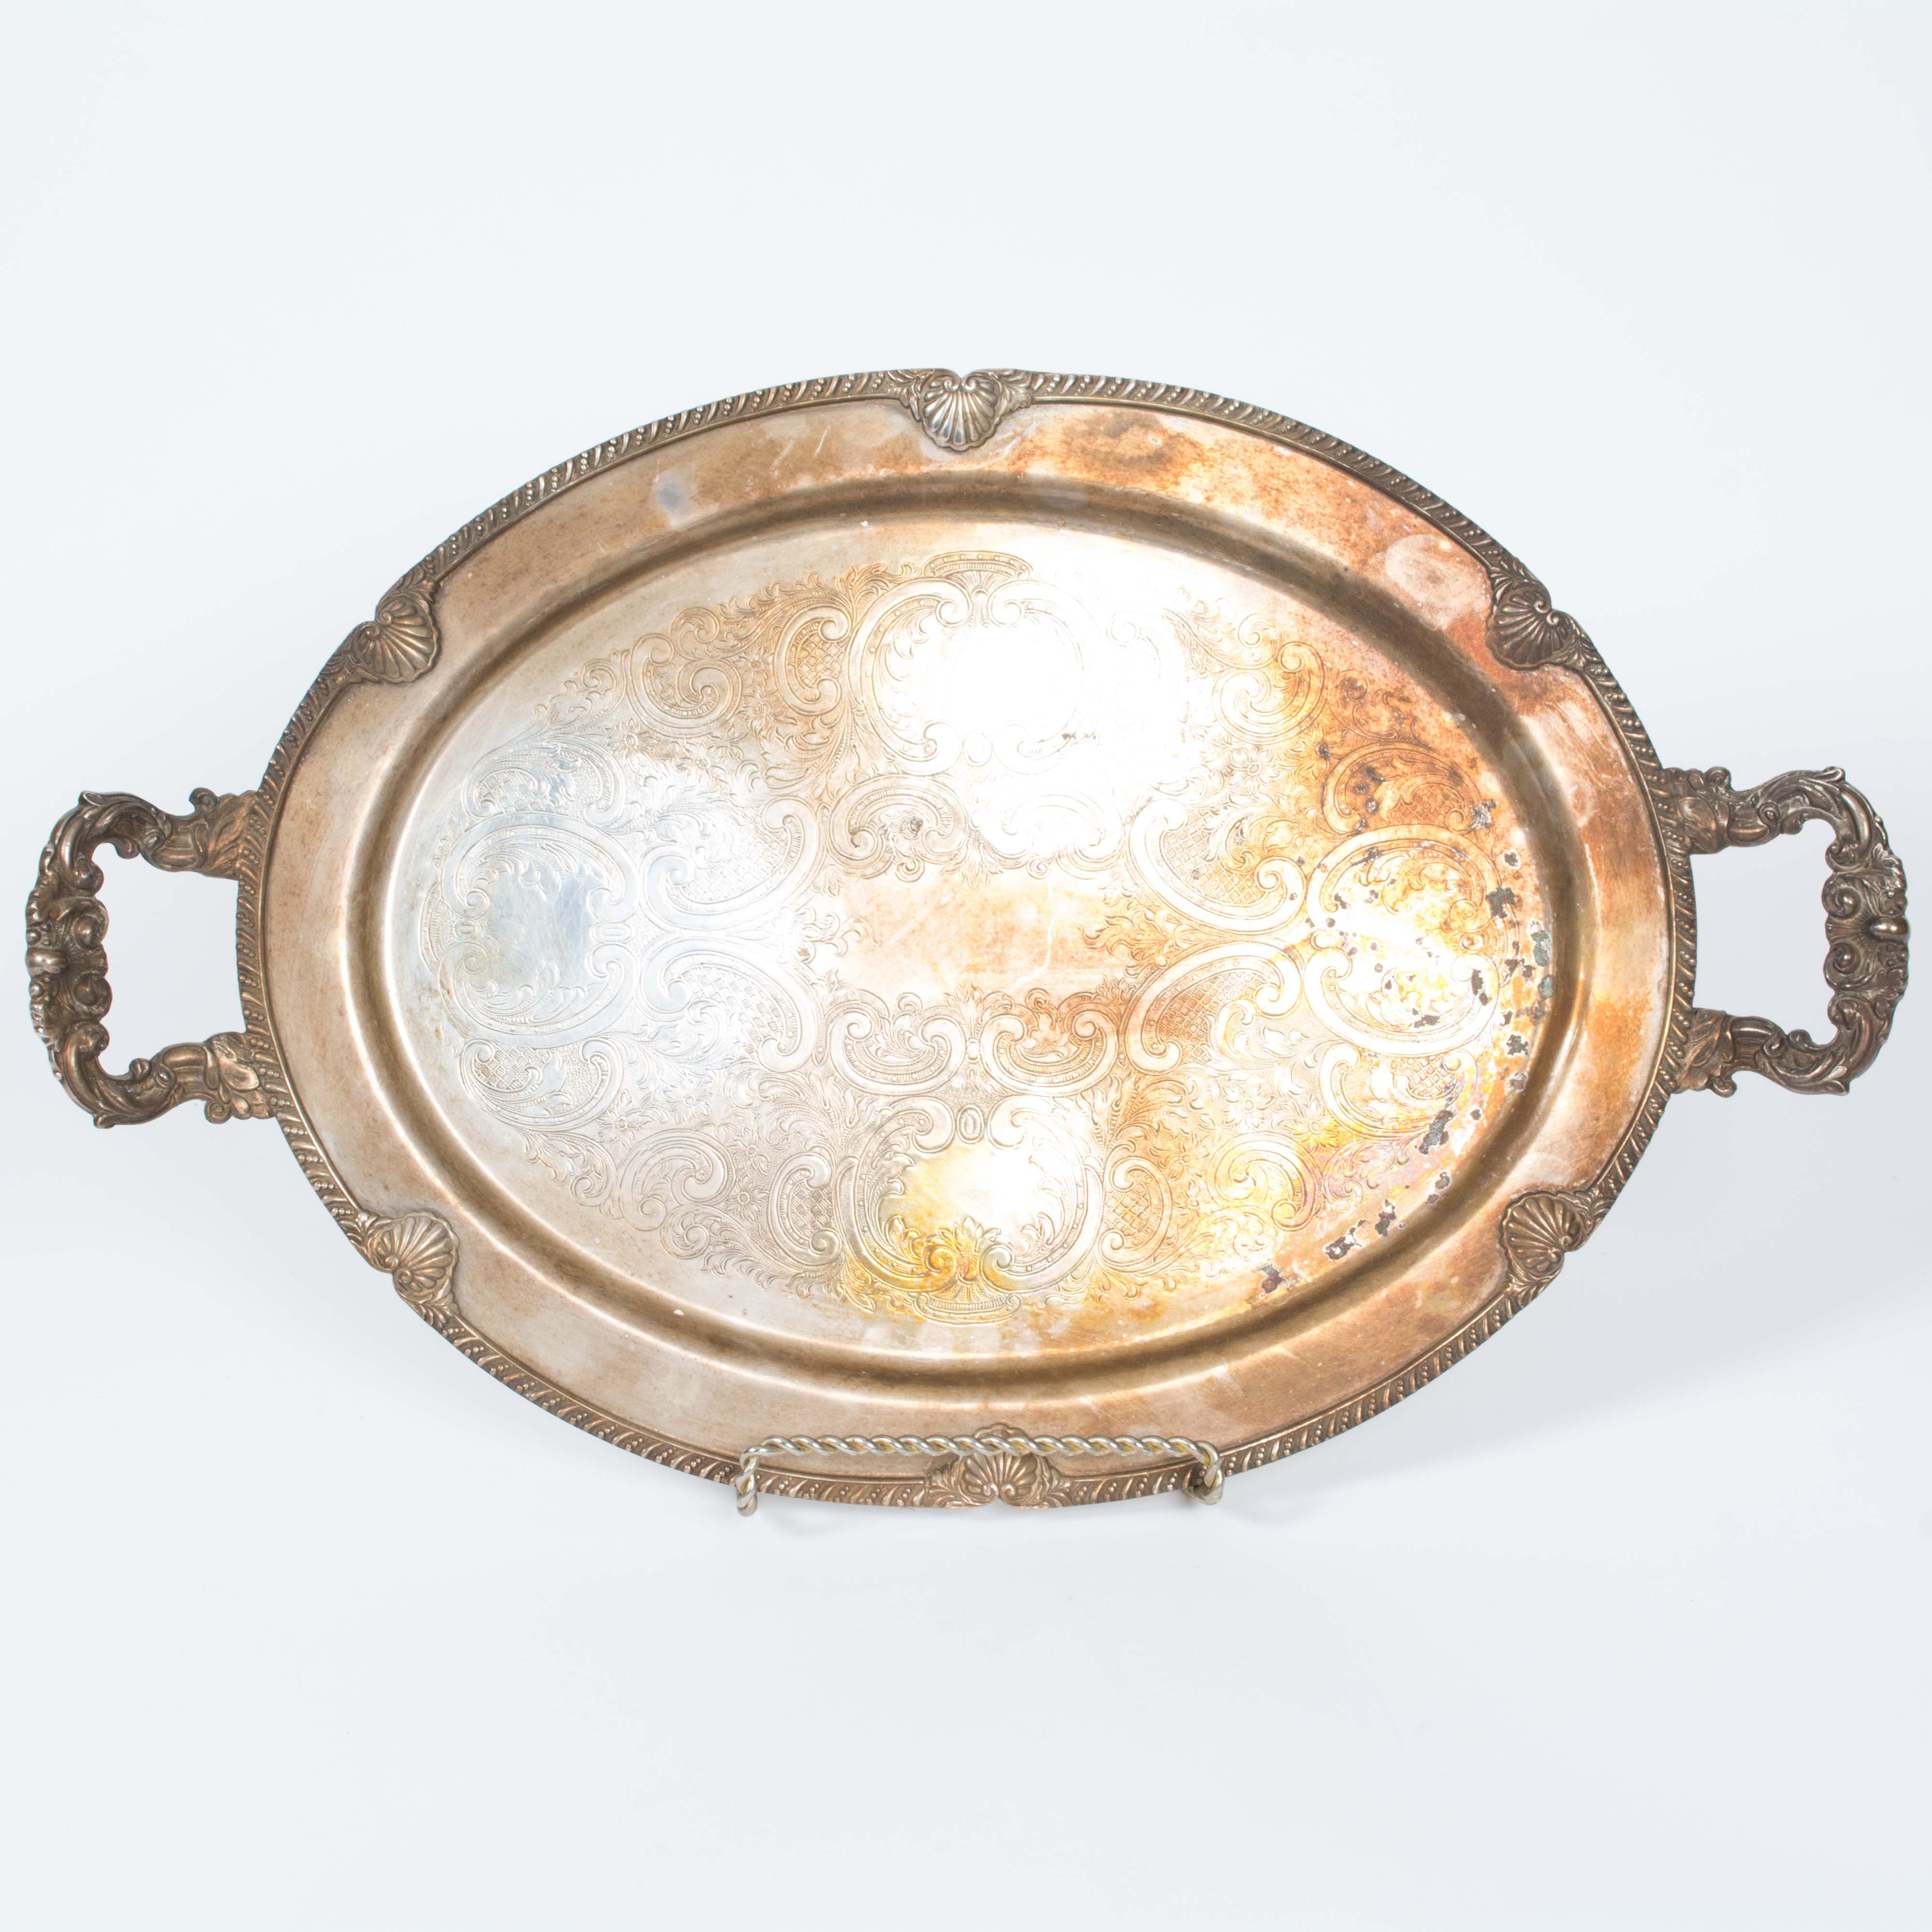 Silver Plated Baroque Tray